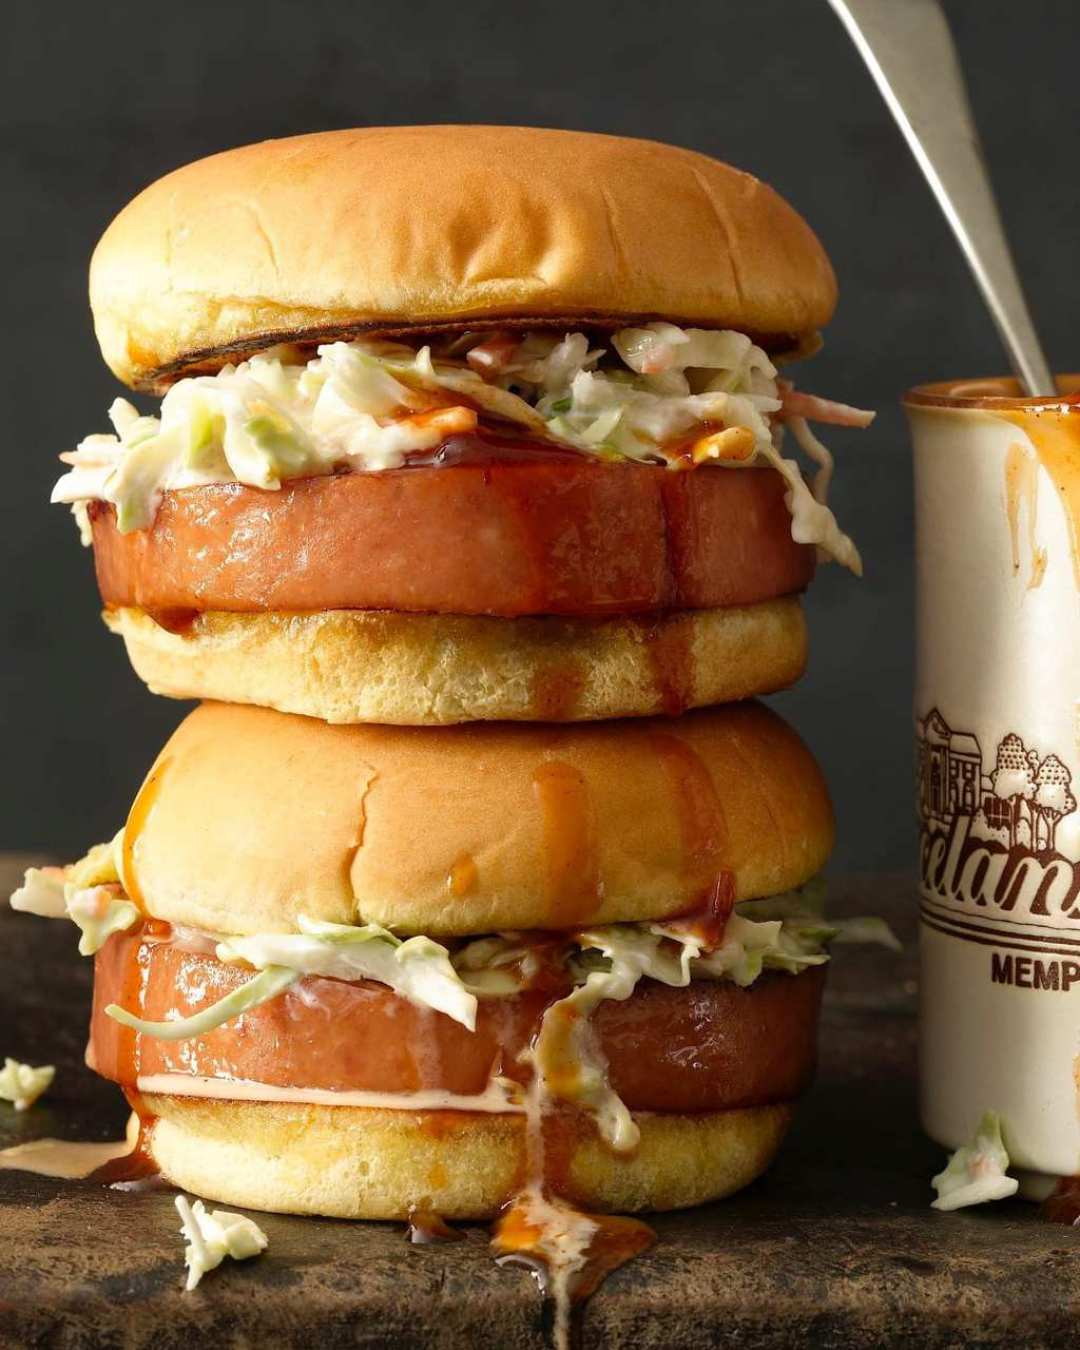 Stacked Memphis Smoked Bologna Sandwiches with coleslaw on hamburger buns